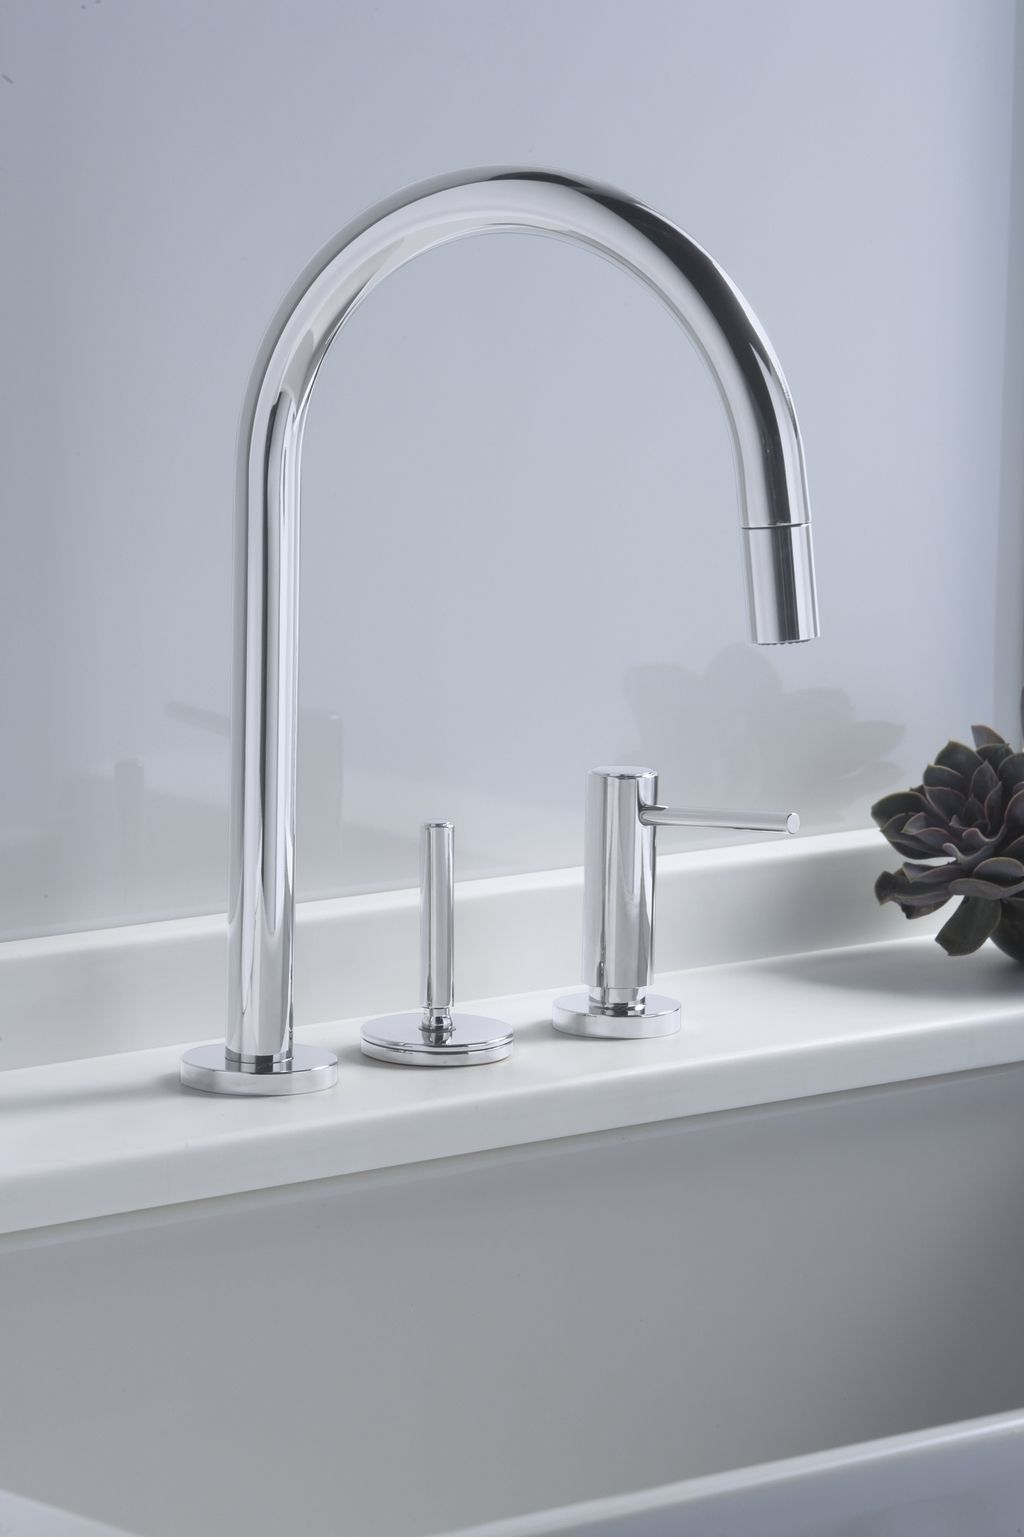 Kallista One Pull-down Kitchen Faucet | faucets | Pinterest ...